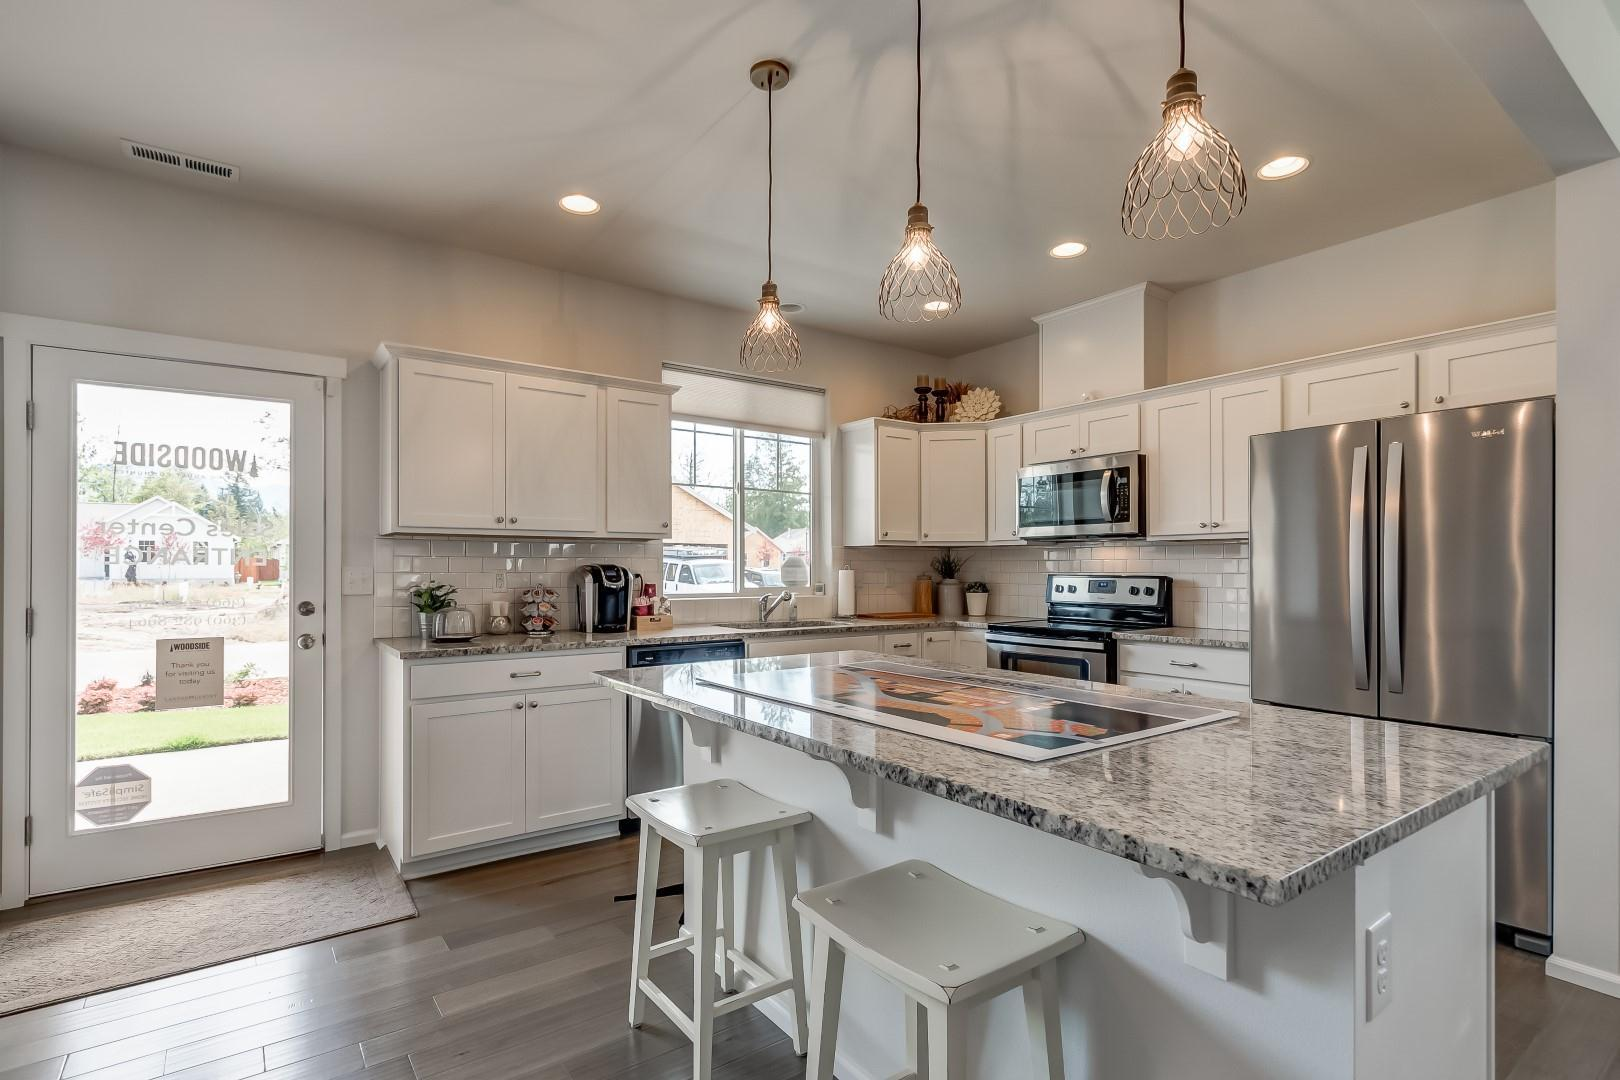 Kitchen featured in the CC Birch By Landed Gentry Homes in Bellingham, WA